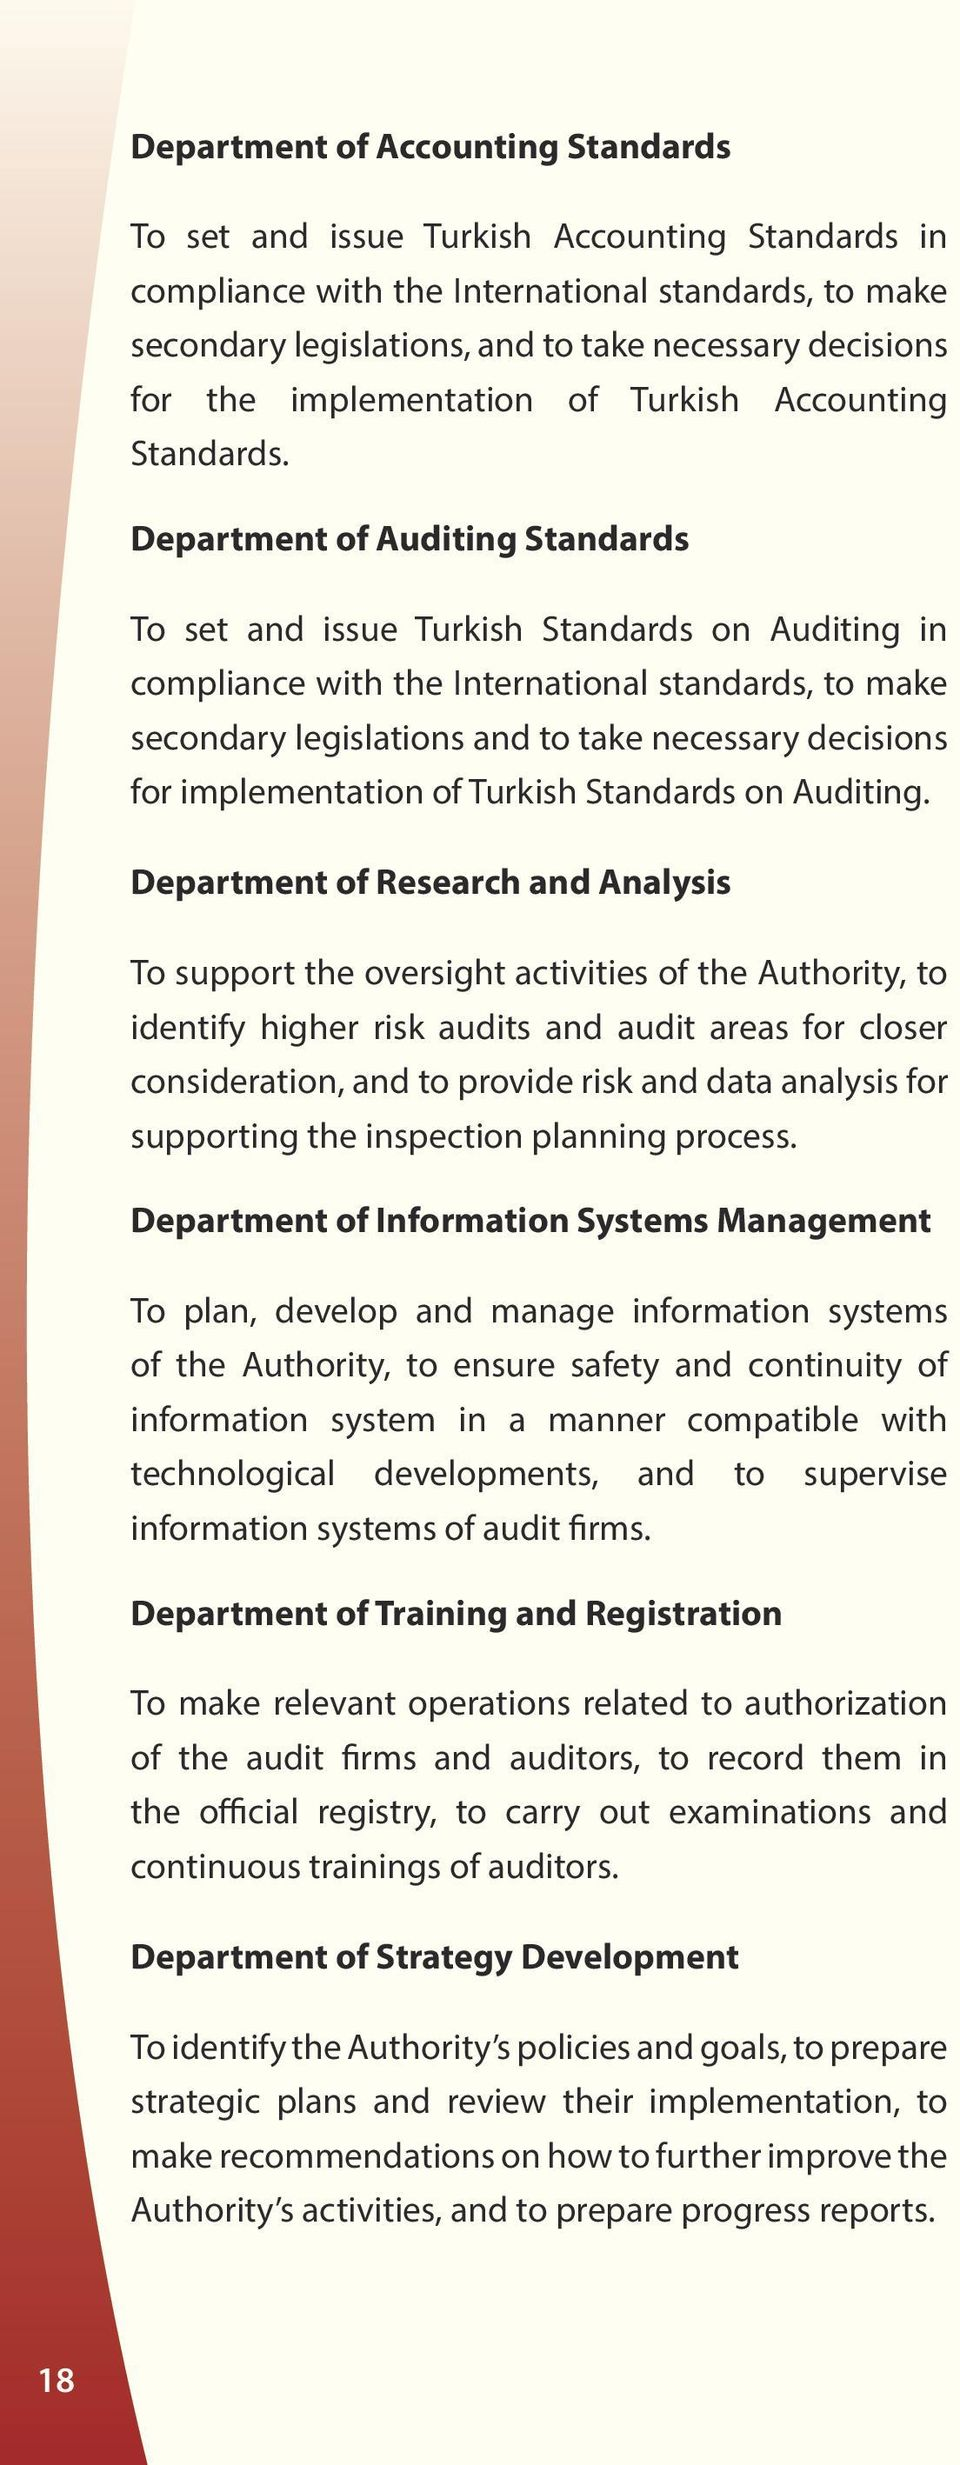 Department of Auditing Standards To set and issue Turkish Standards on Auditing in compliance with the International standards, to make secondary legislations and to take necessary decisions for